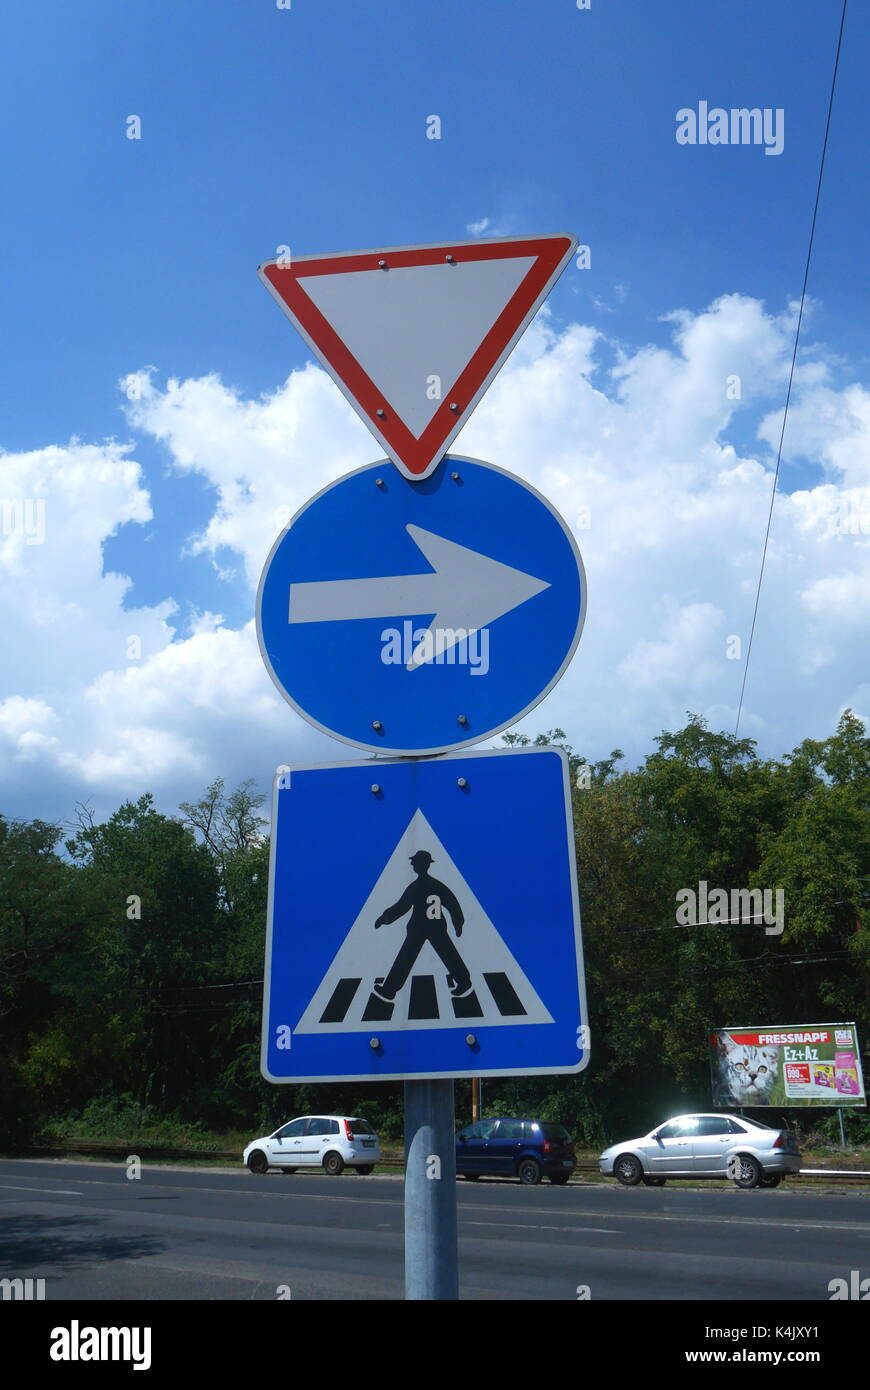 Road signs indicating give way, one way, pedestrian crossing, Budapest, Hungary - Stock Image